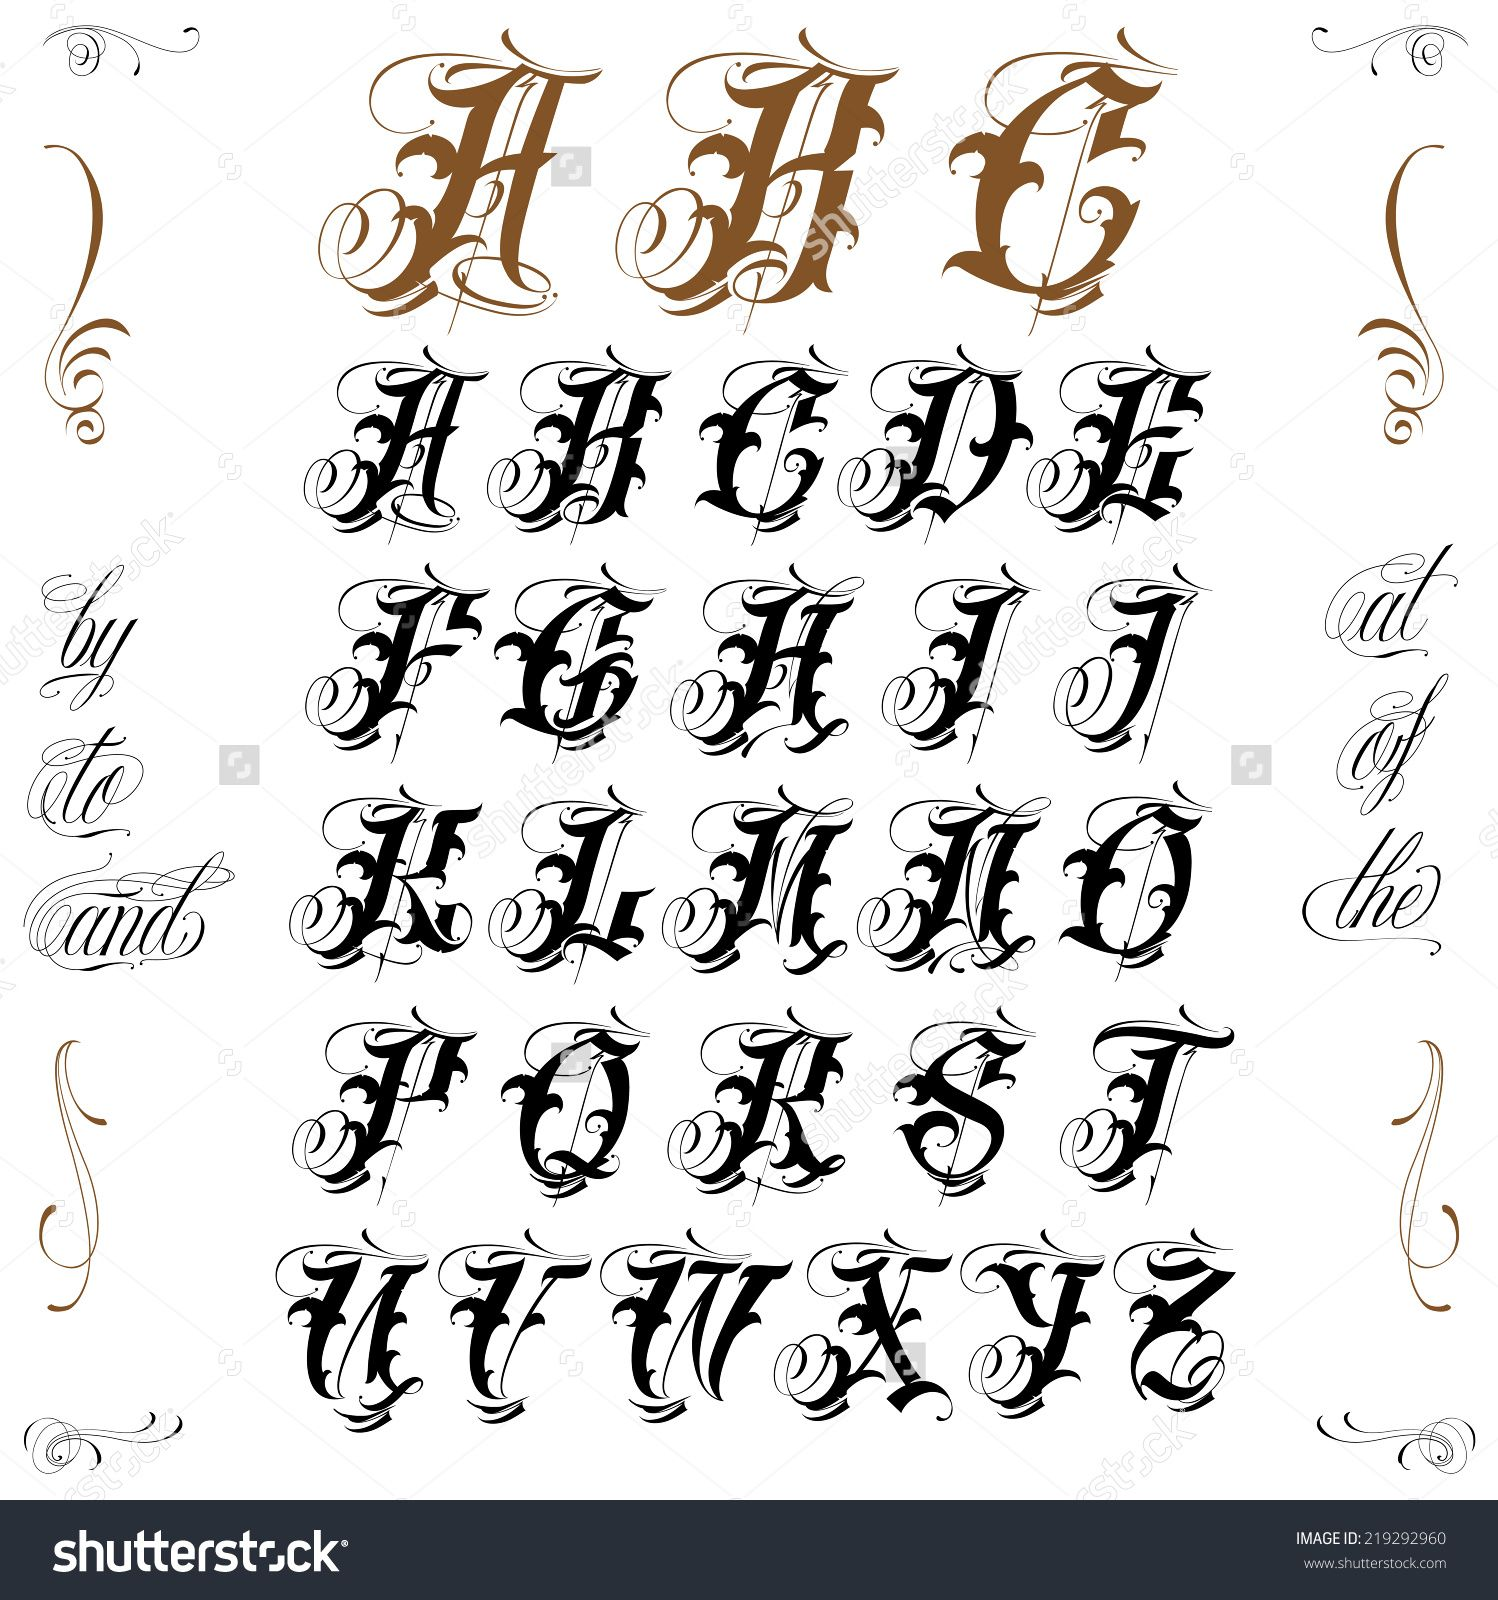 Image result for ampersand in old english calligraphy